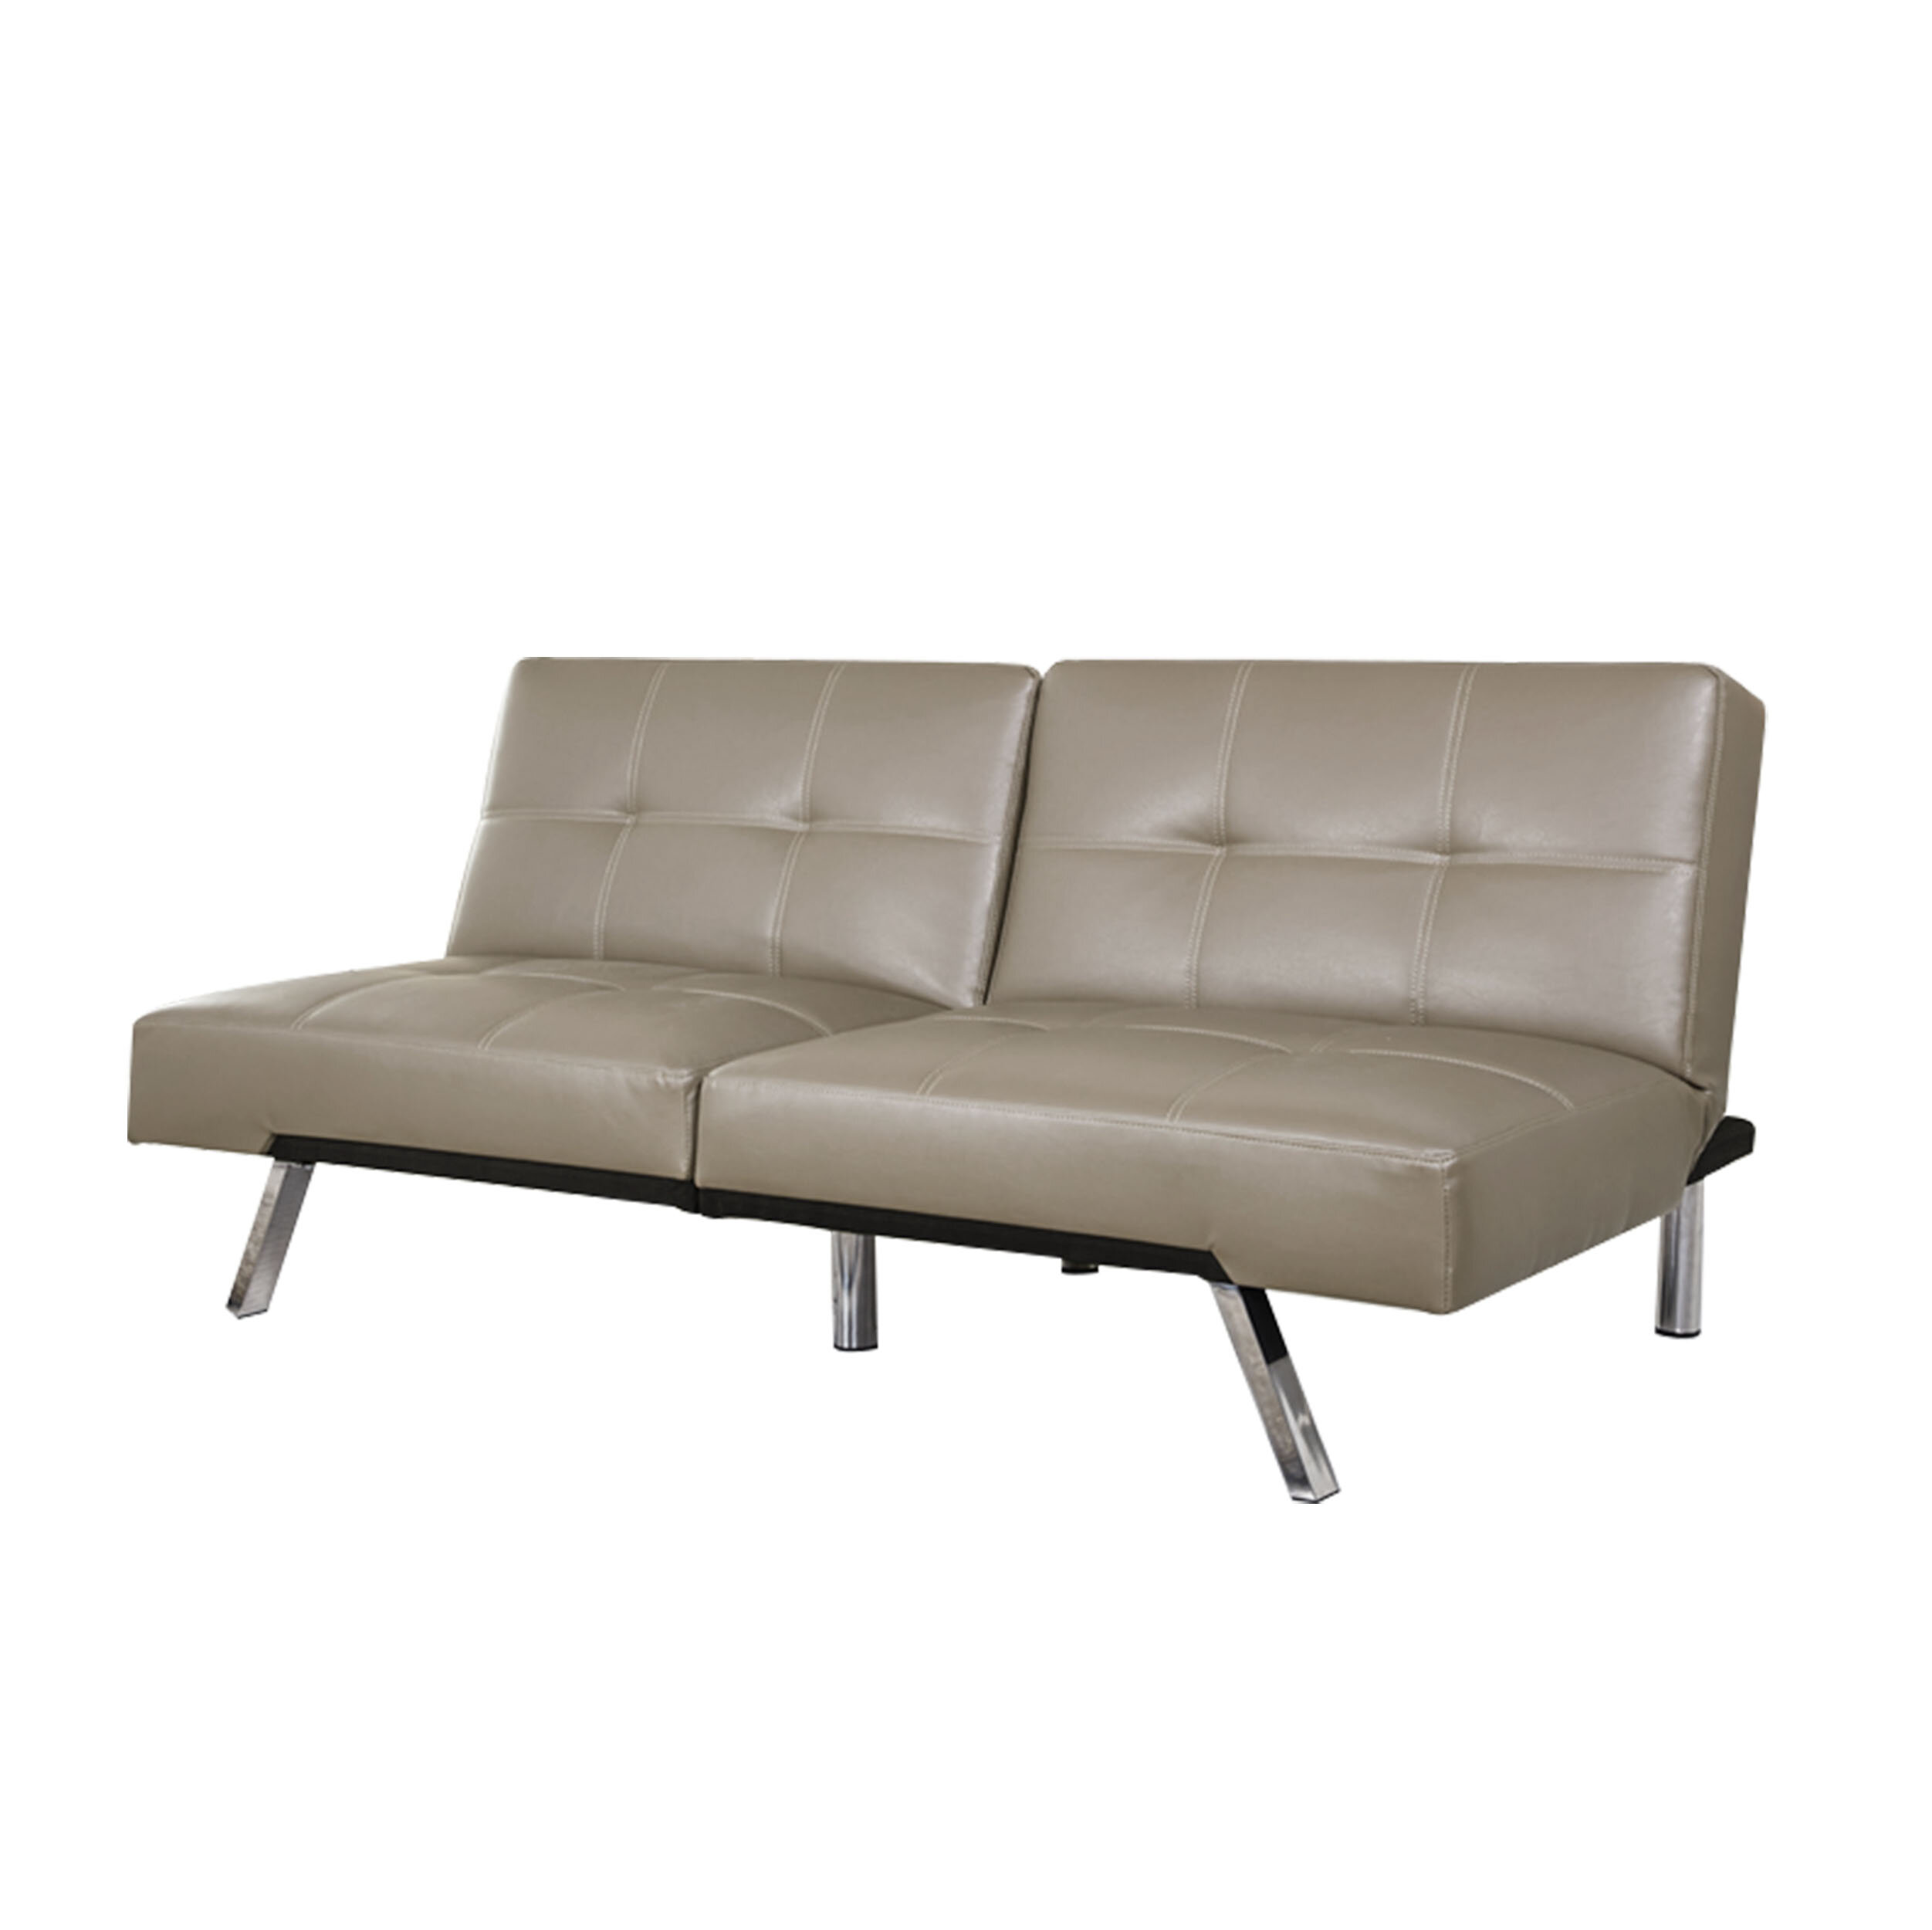 Astounding Bartlett Convertible Sofa Download Free Architecture Designs Pushbritishbridgeorg